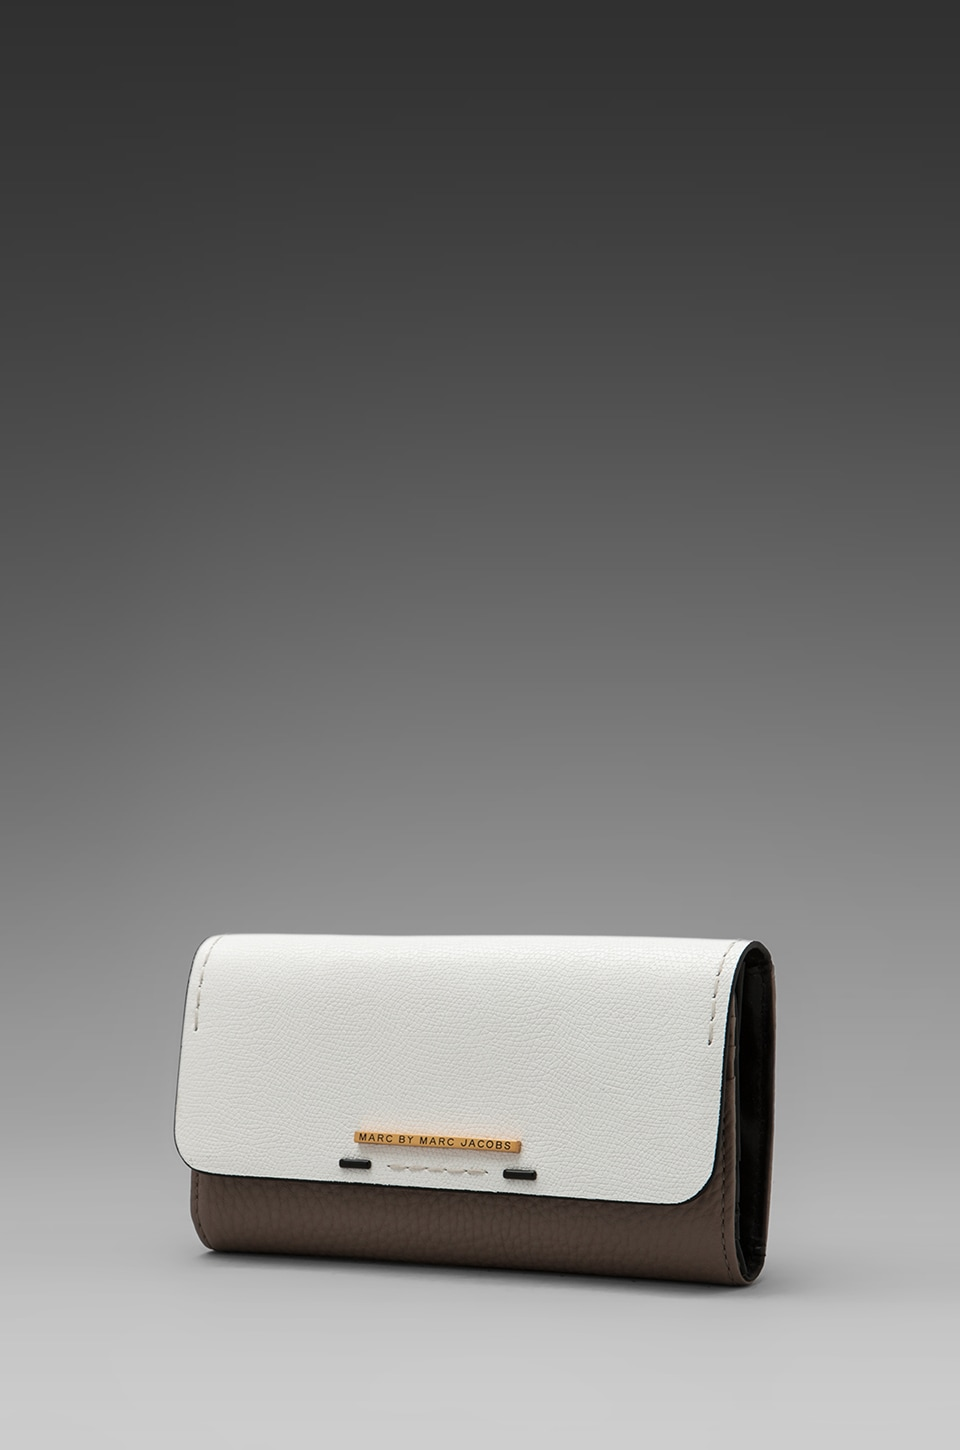 Marc by Marc Jacobs Sheltered Island Colorblocked New Long Trifold Wallet in Star White Multi